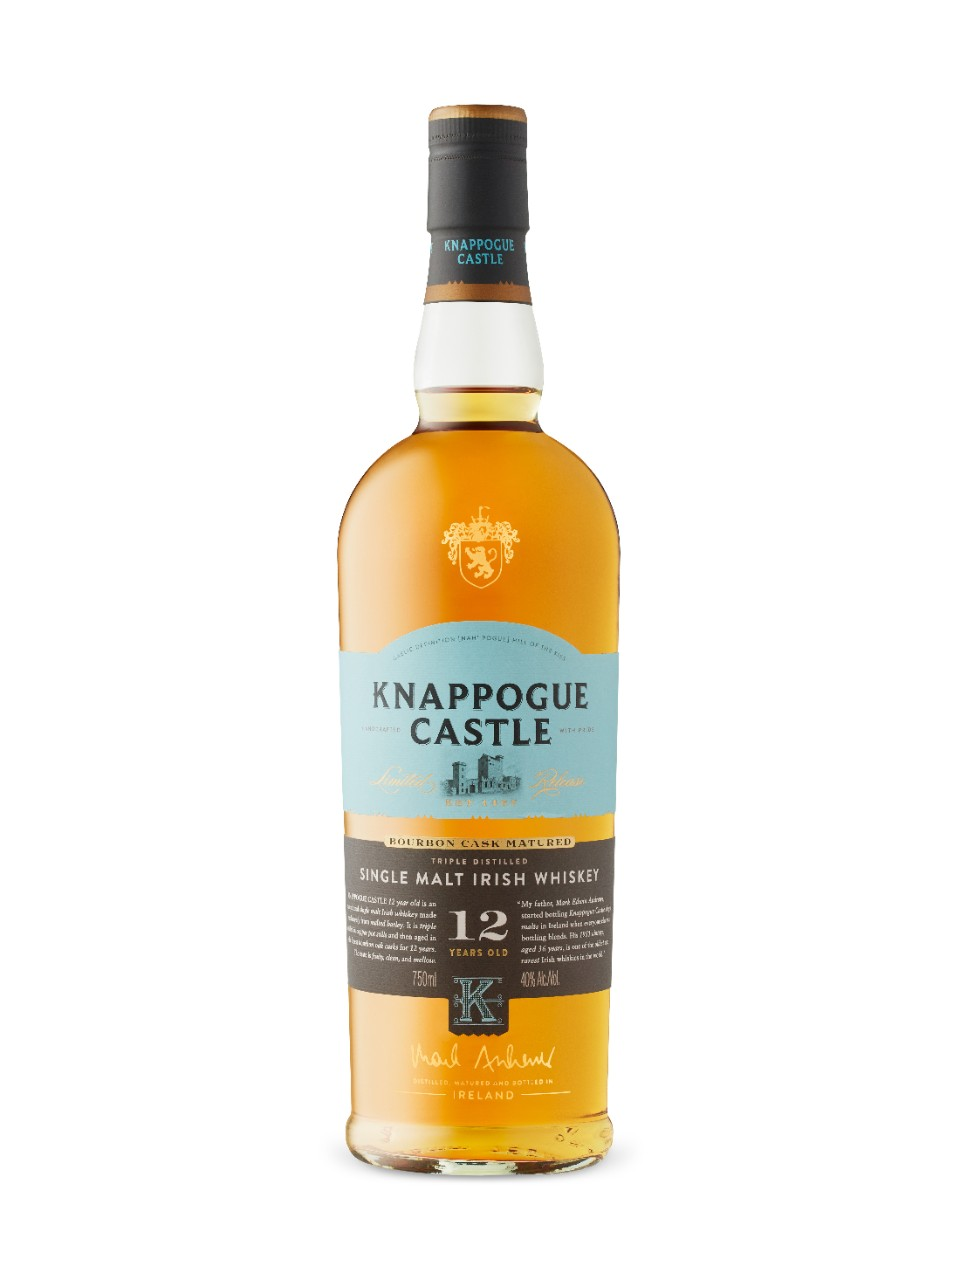 12 Yo Knappogue Castle Irish Single Malt Whiskey from LCBO